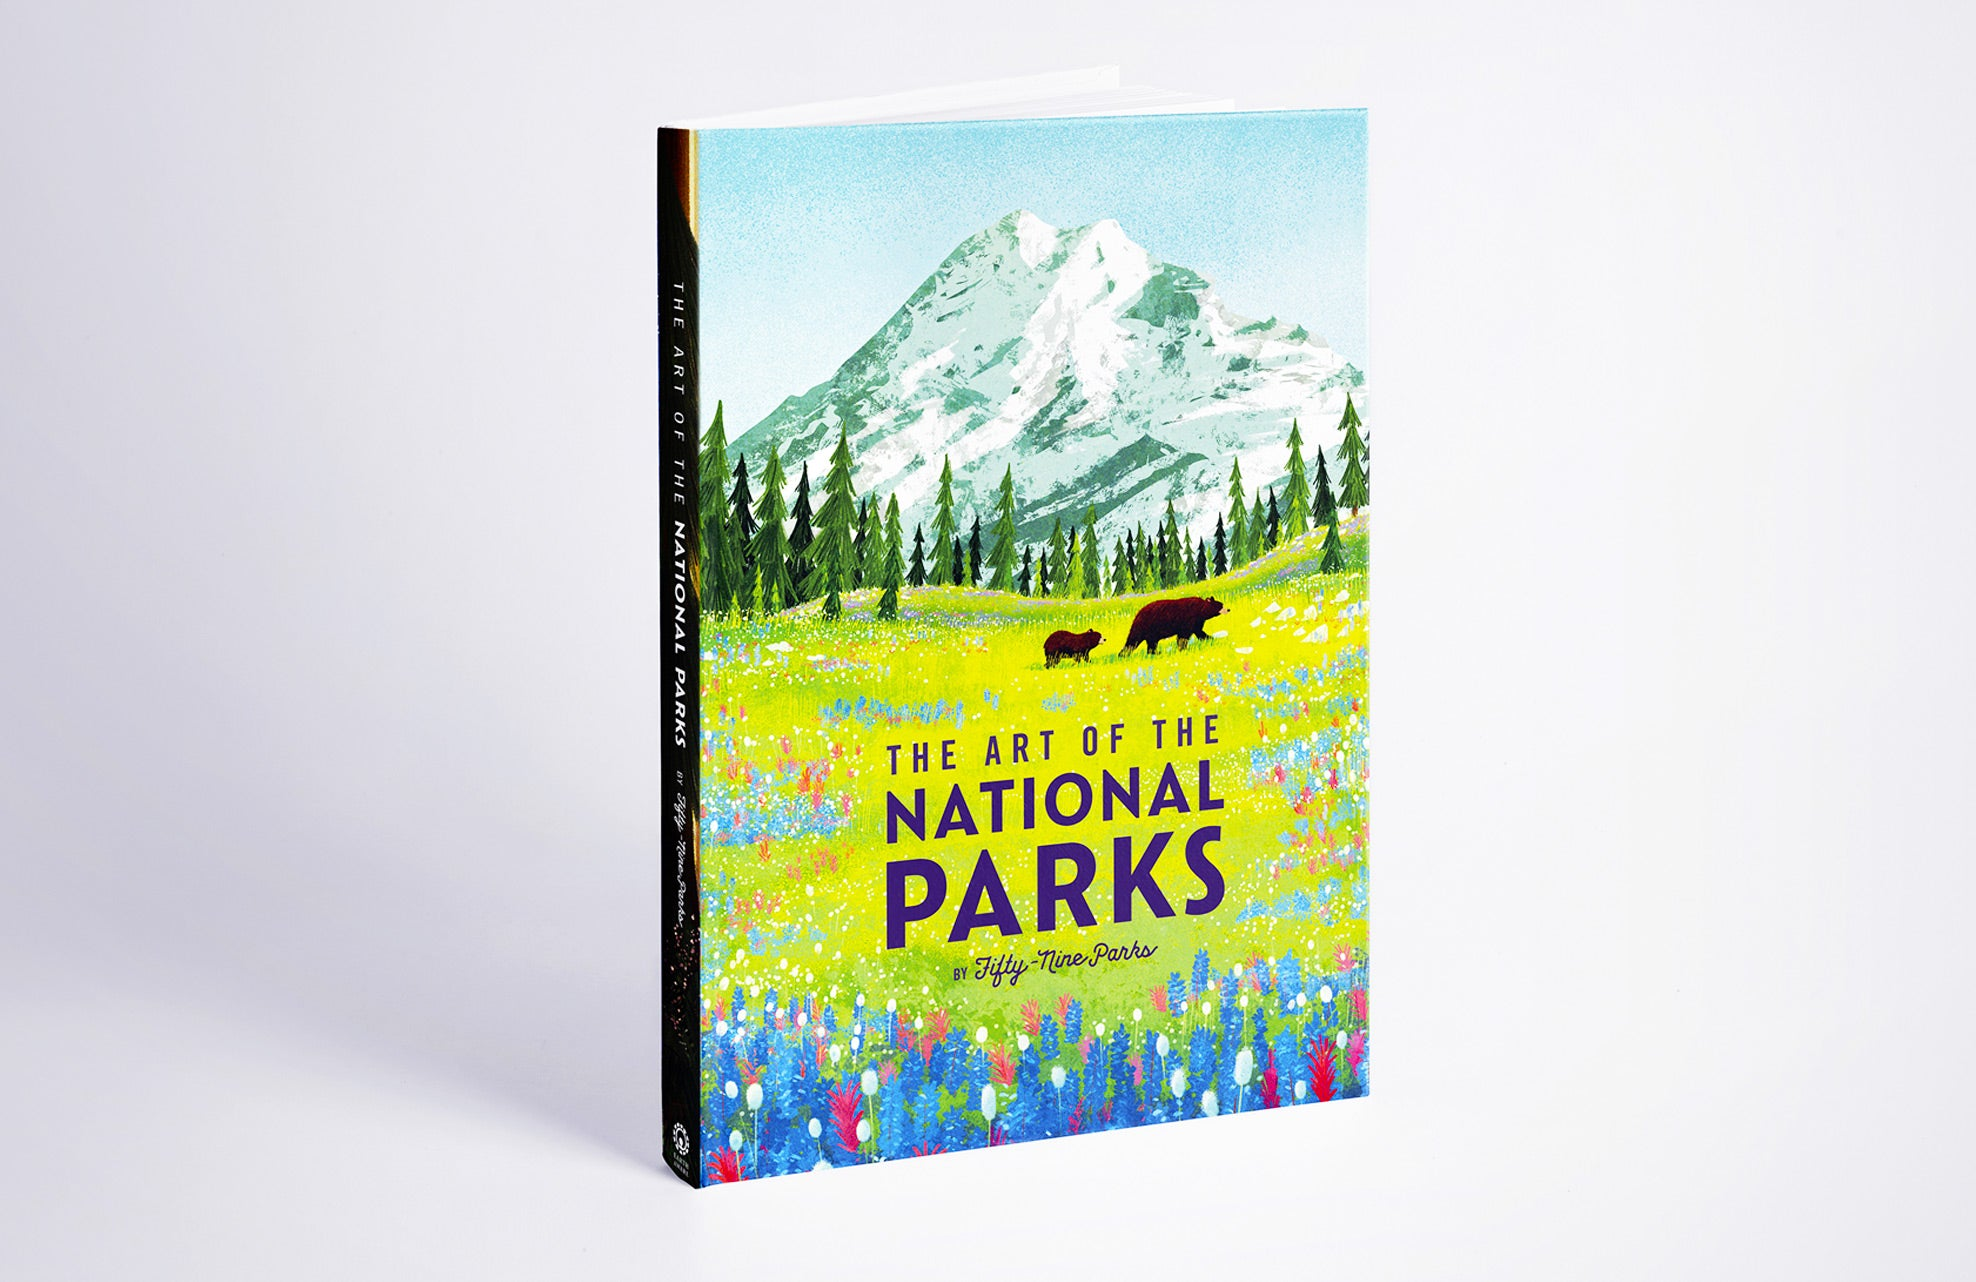 art of the national parks by fifty-nine parks book cover